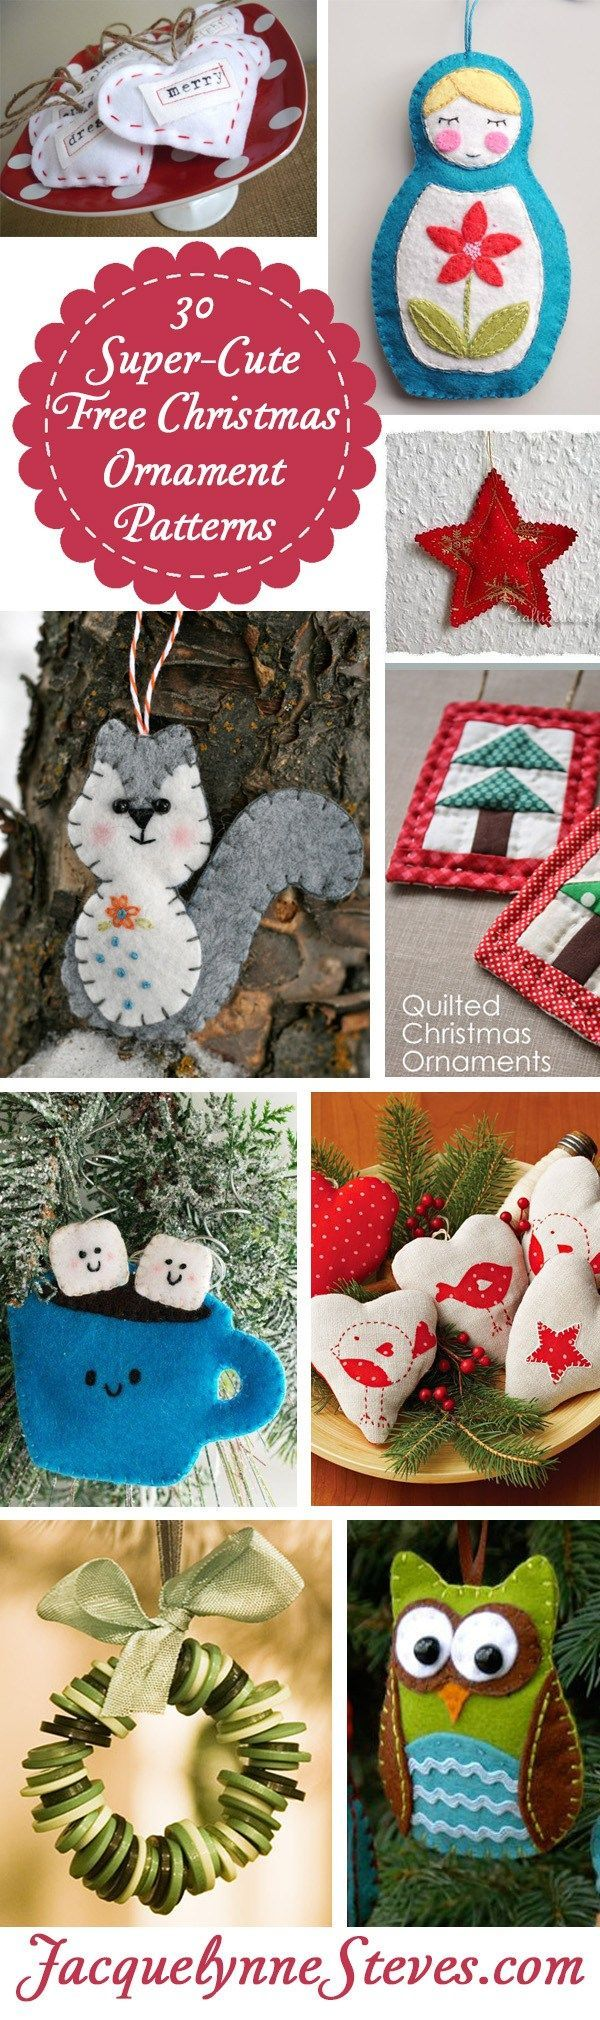 30 Super-Cute Free Christmas Ornament Patterns | JacquelynneSteves.com